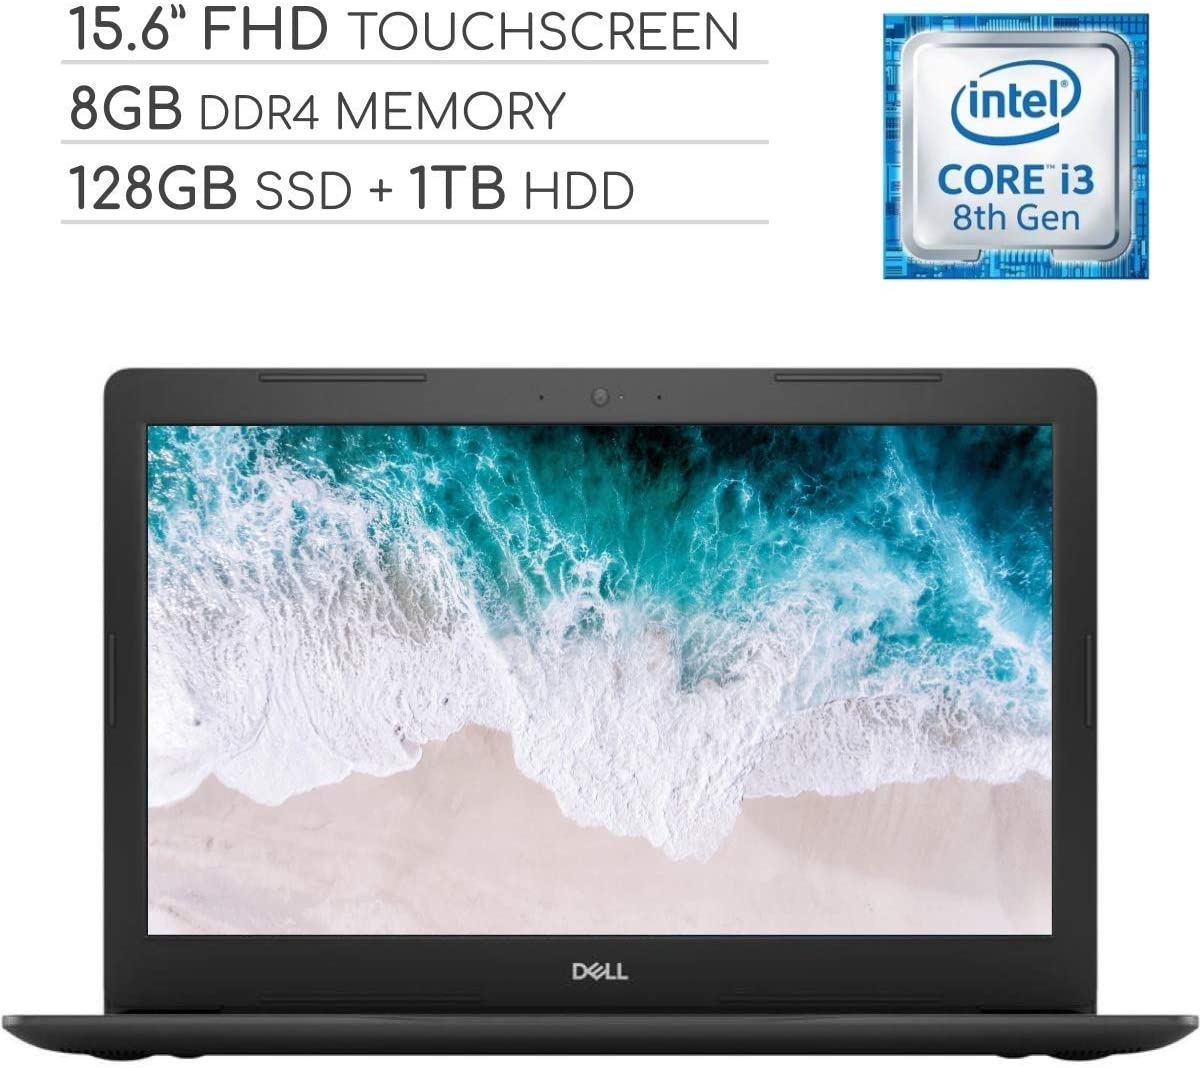 Dell Inspiron 15 5000 Laptop Computer 2019, 15.6 inch FHD Touchscreen Notebook, Intel Core i3-8130U 2.2Ghz, 8GB DDR4 RAM, 128GB SSD + 1TB HDD, Wi-Fi, Webcam, Windows 10